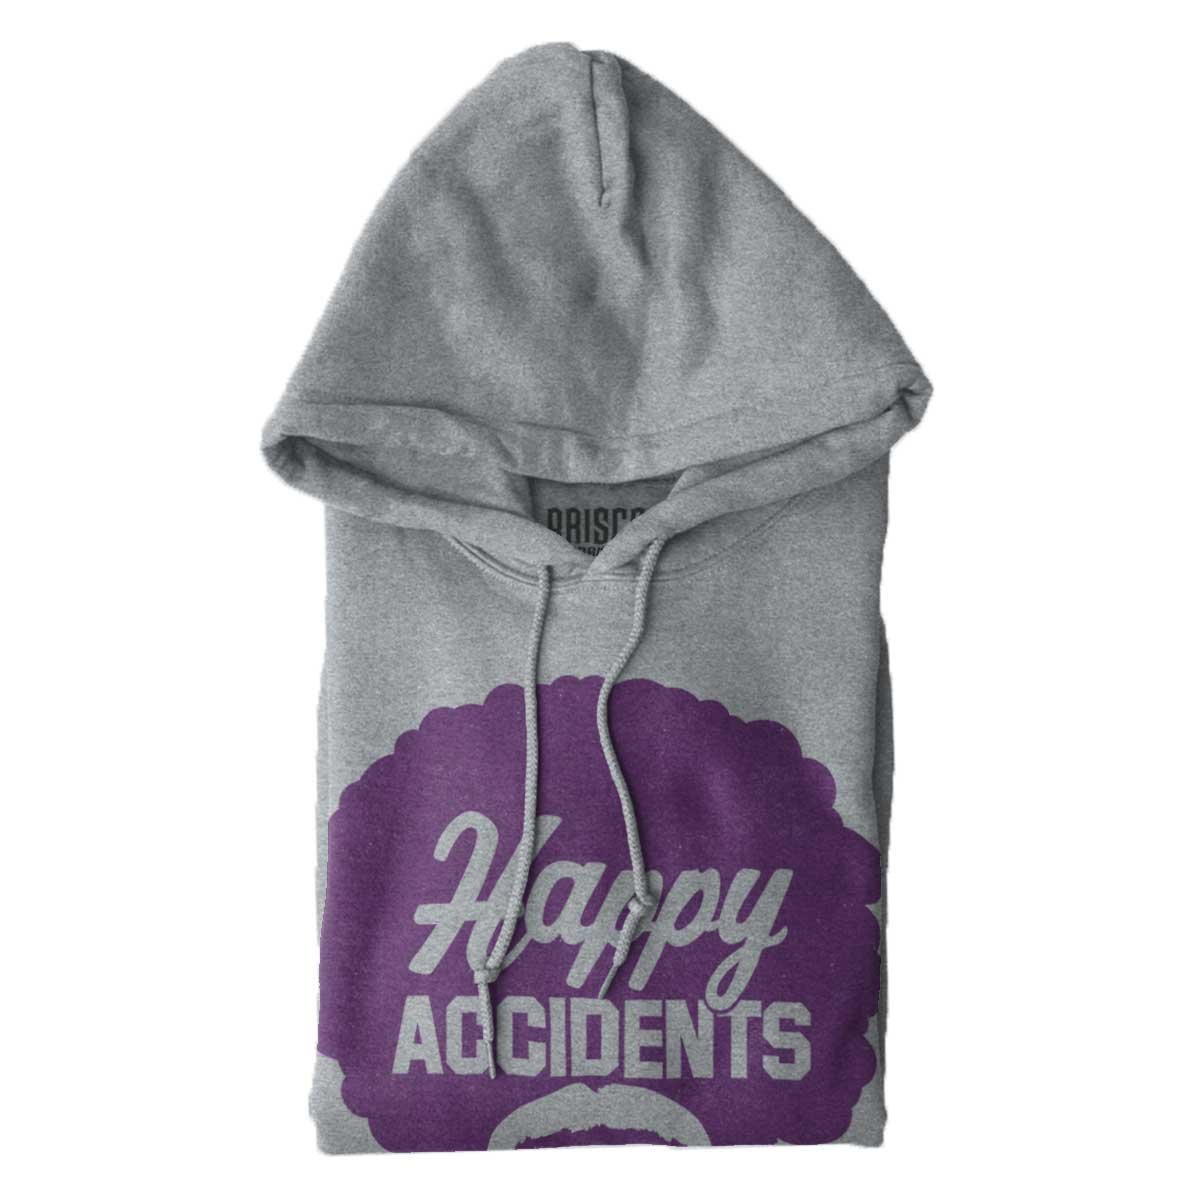 Brisco Brands Happy Accidents No Mistakes Bob Ross Joy of Painting Hoodie Sweatshirt by Brisco Brands (Image #6)